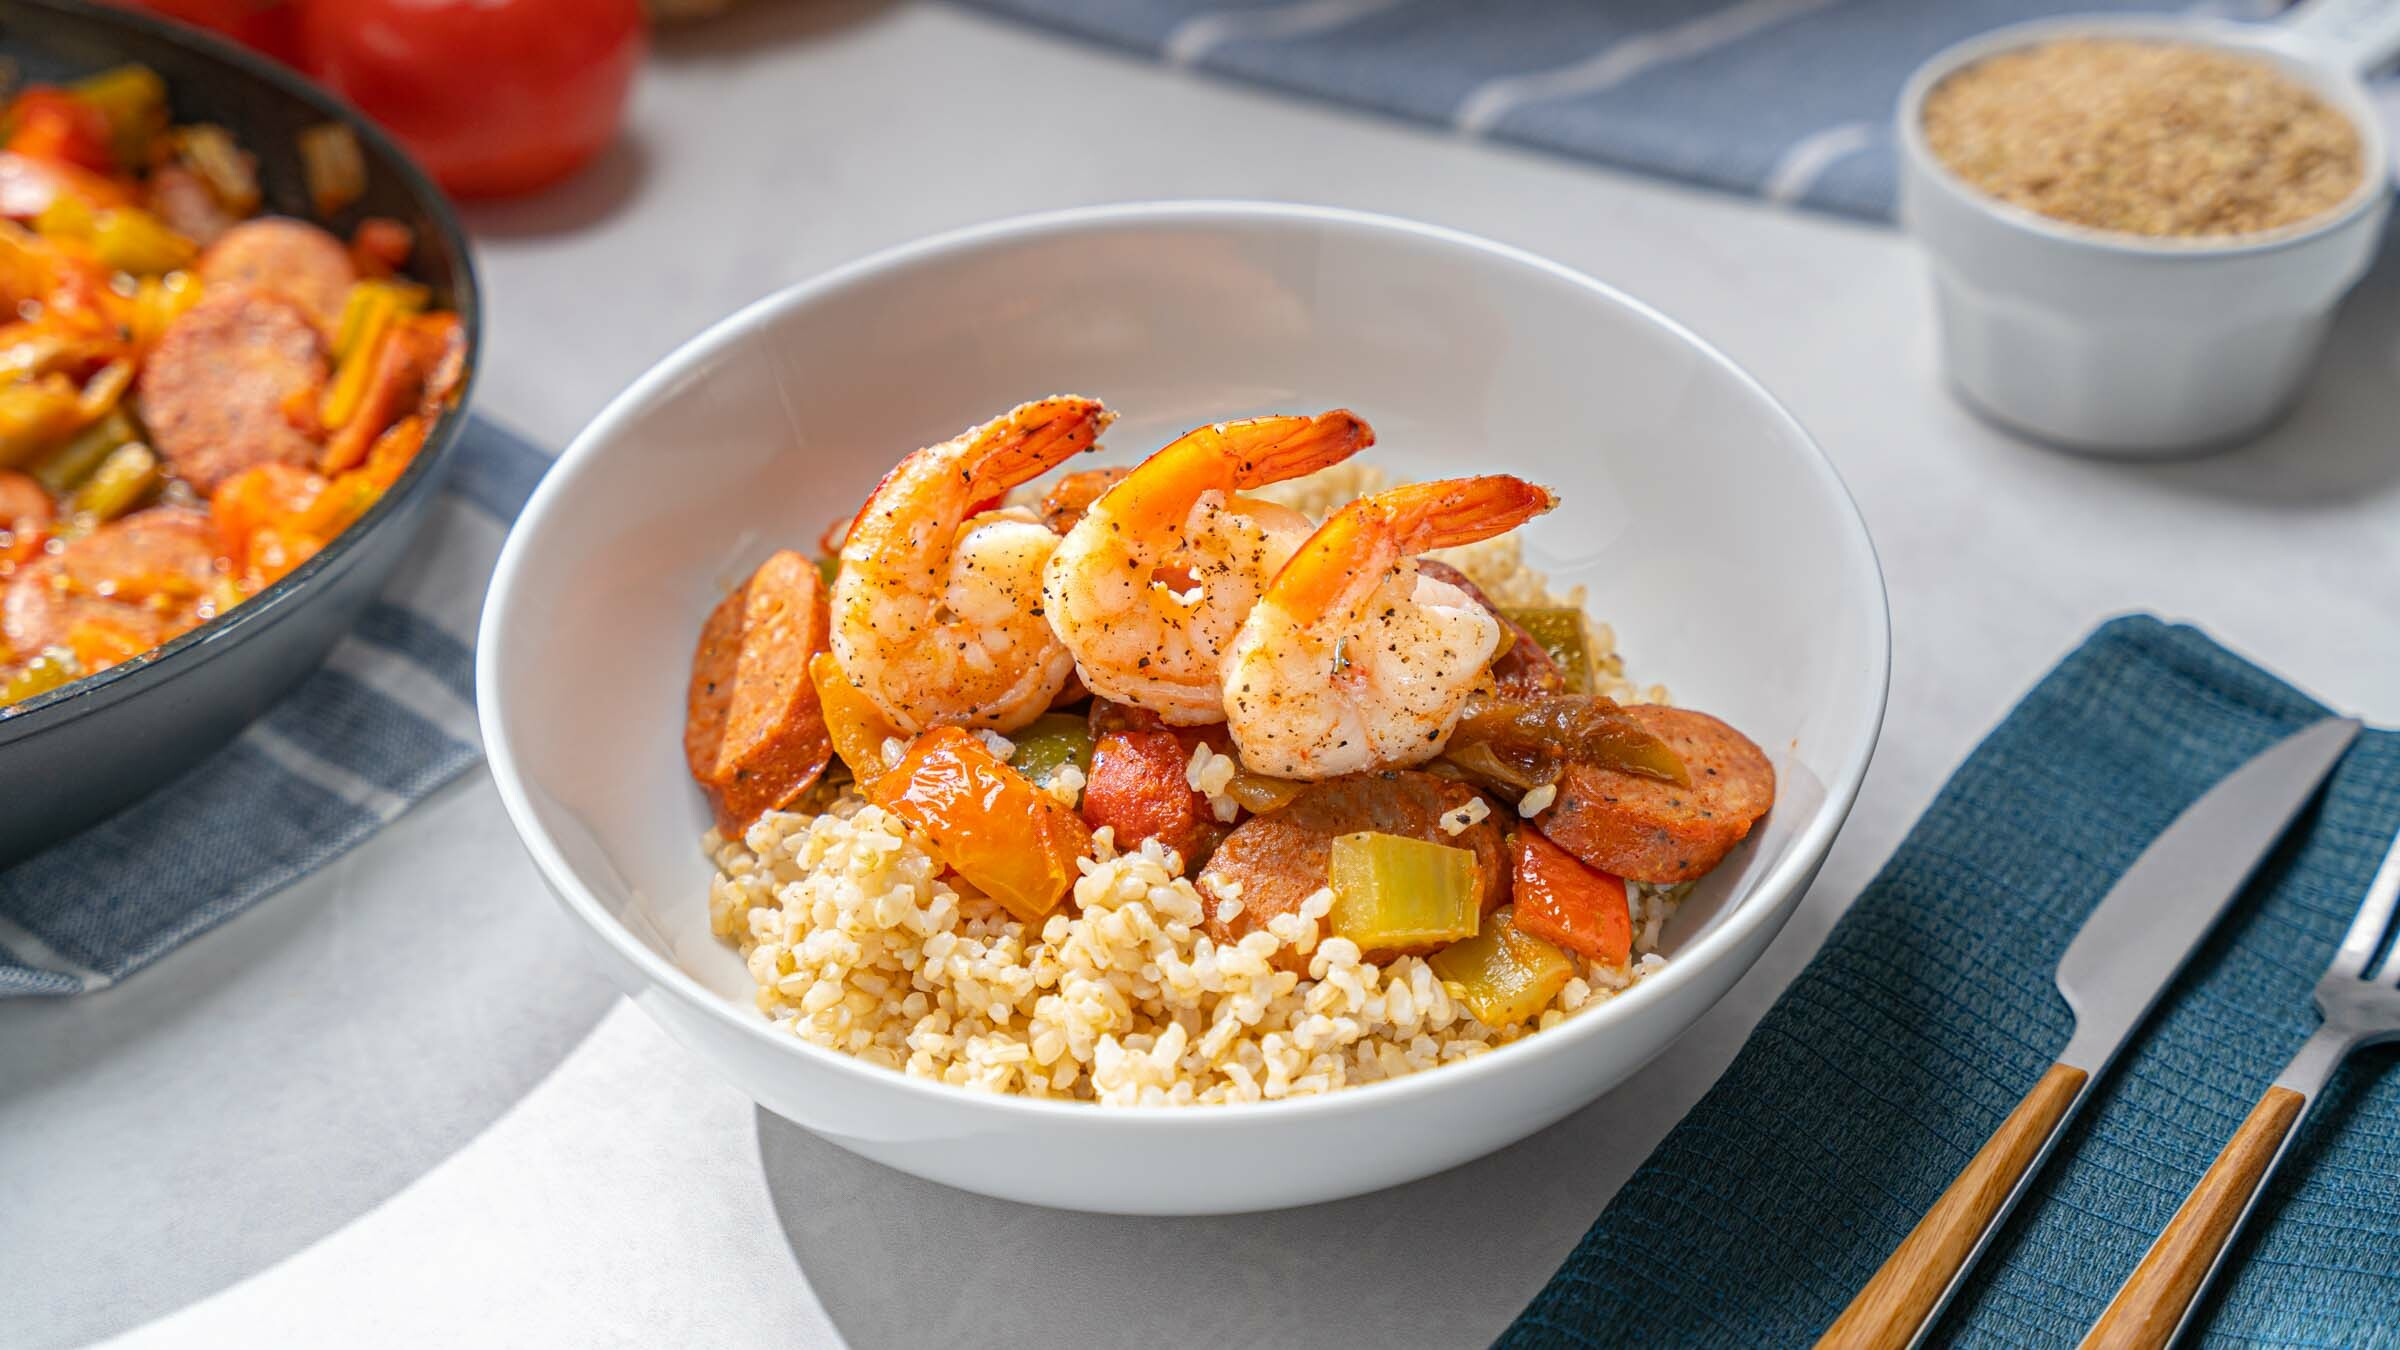 Creole Rice with Shrimp & Sausage